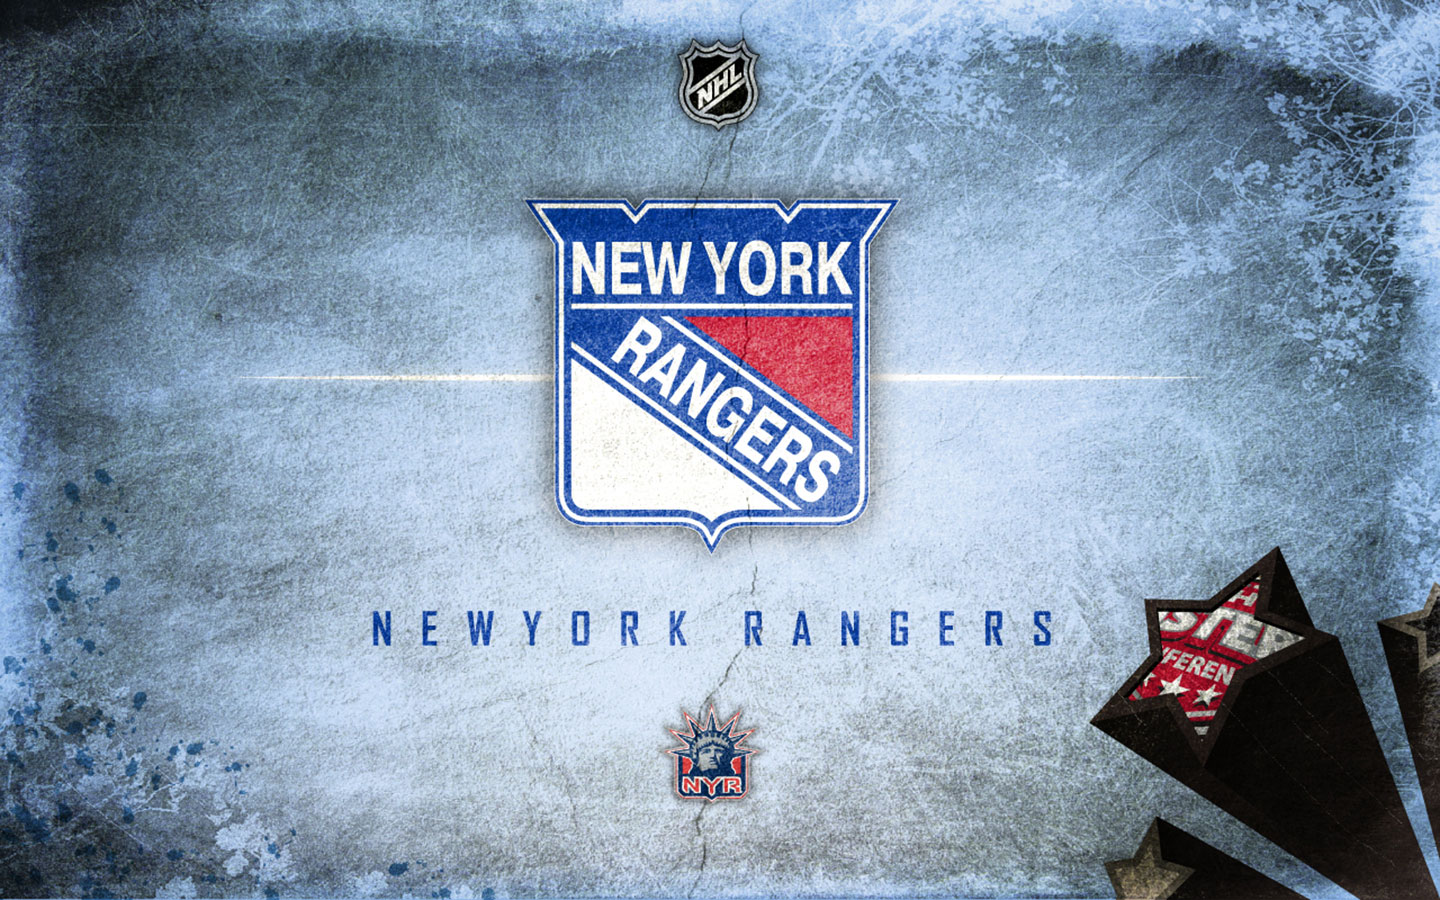 New York Rangers wallpapers New York Rangers background   Page 3 1440x900